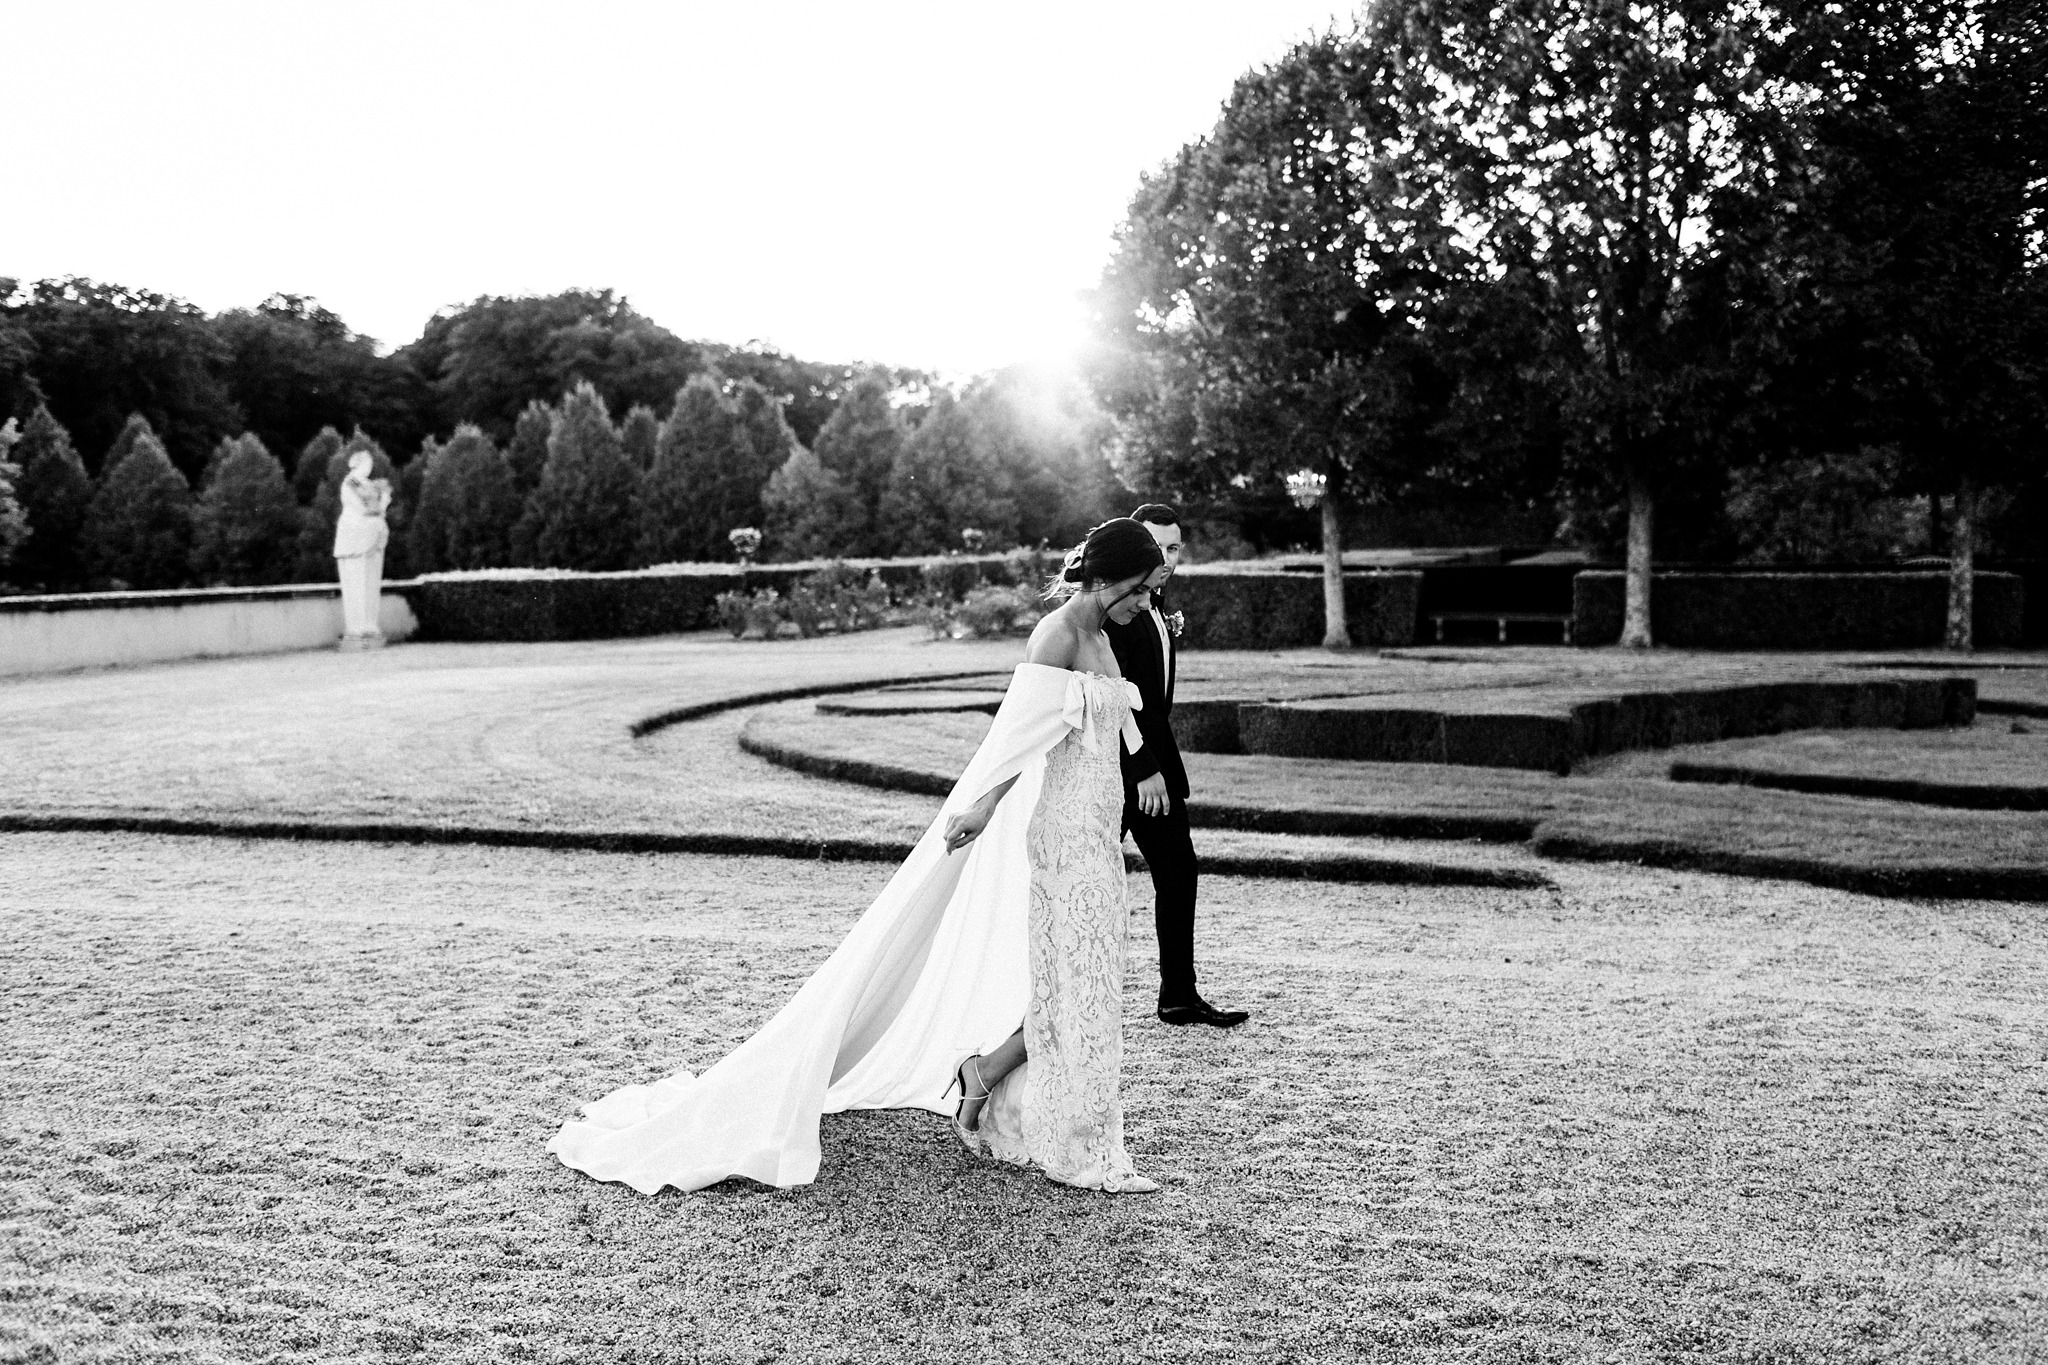 chateau-wedding-france-chanel-eric-as-seen-on-vogue-with-sarah-falugo-photographer_0130